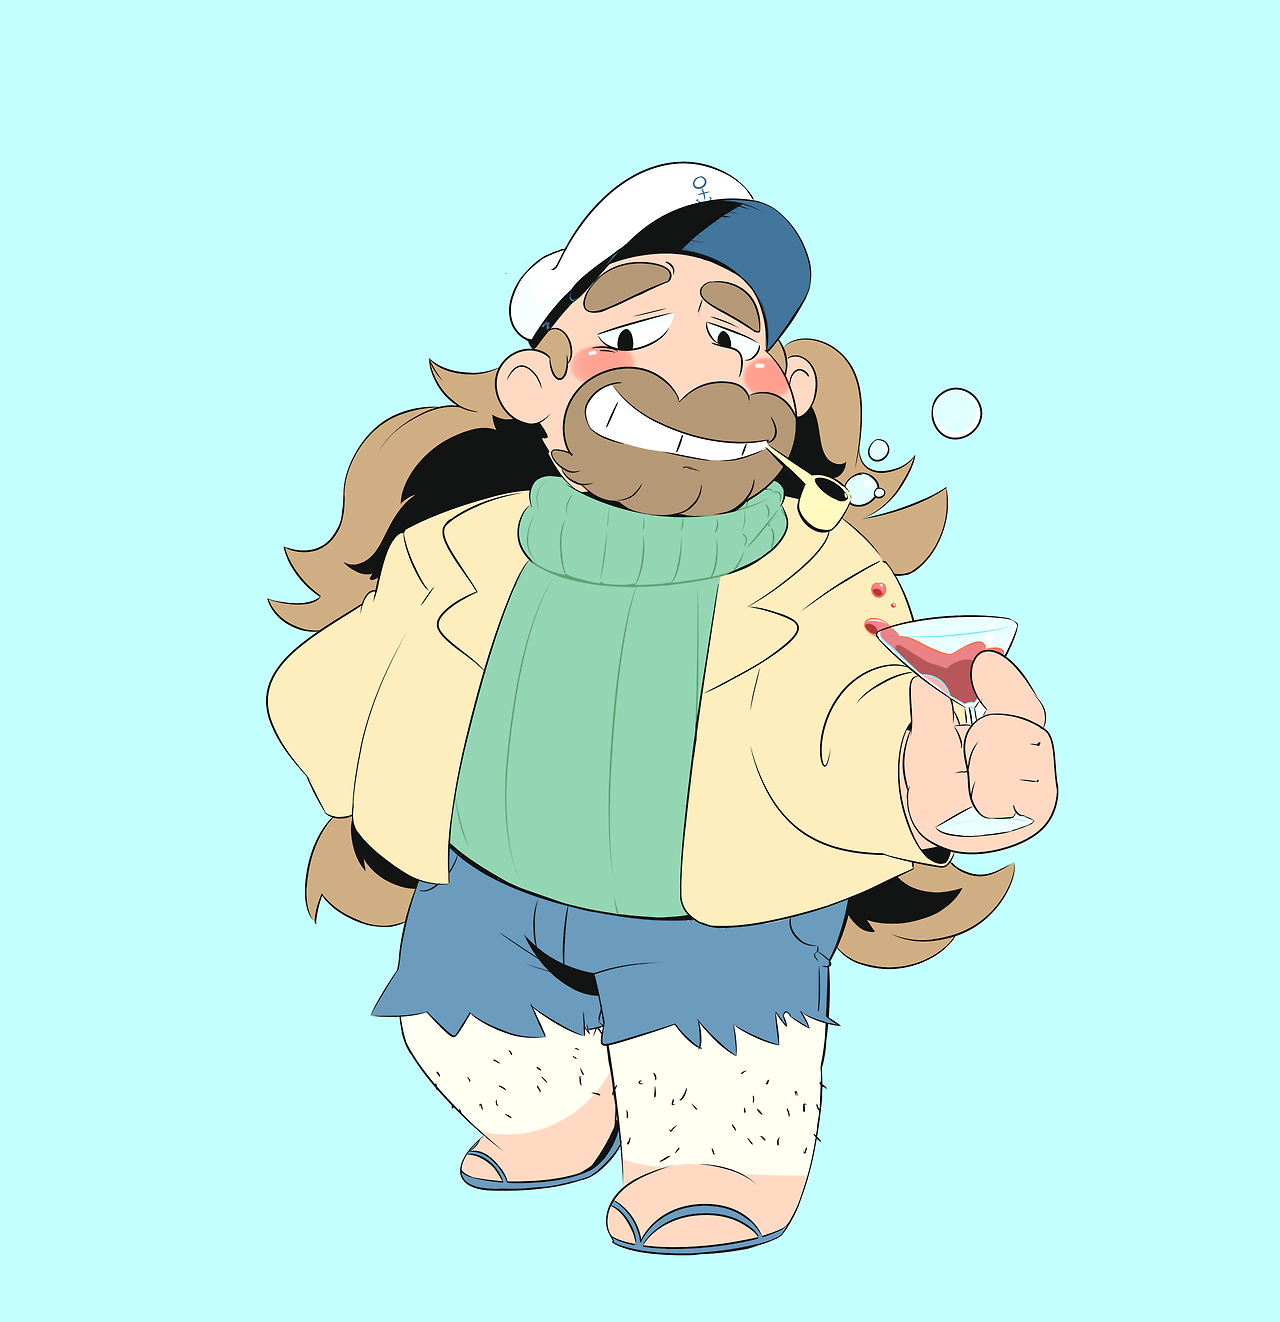 cap'n greg is still cute